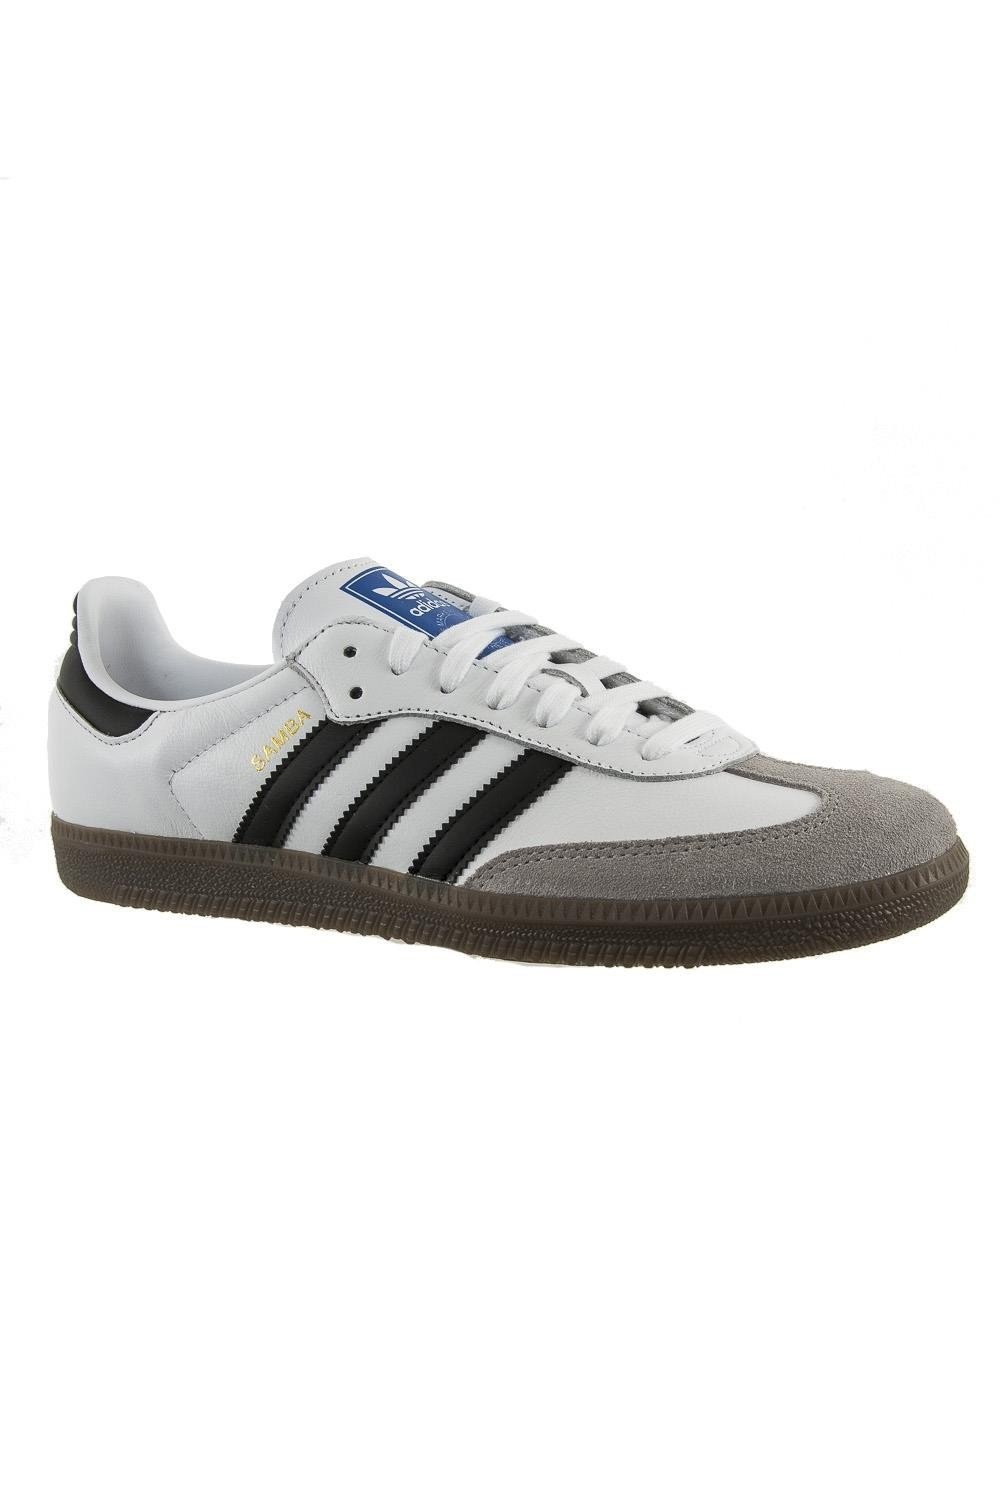 Basket adidas Originals Samba OG B75806